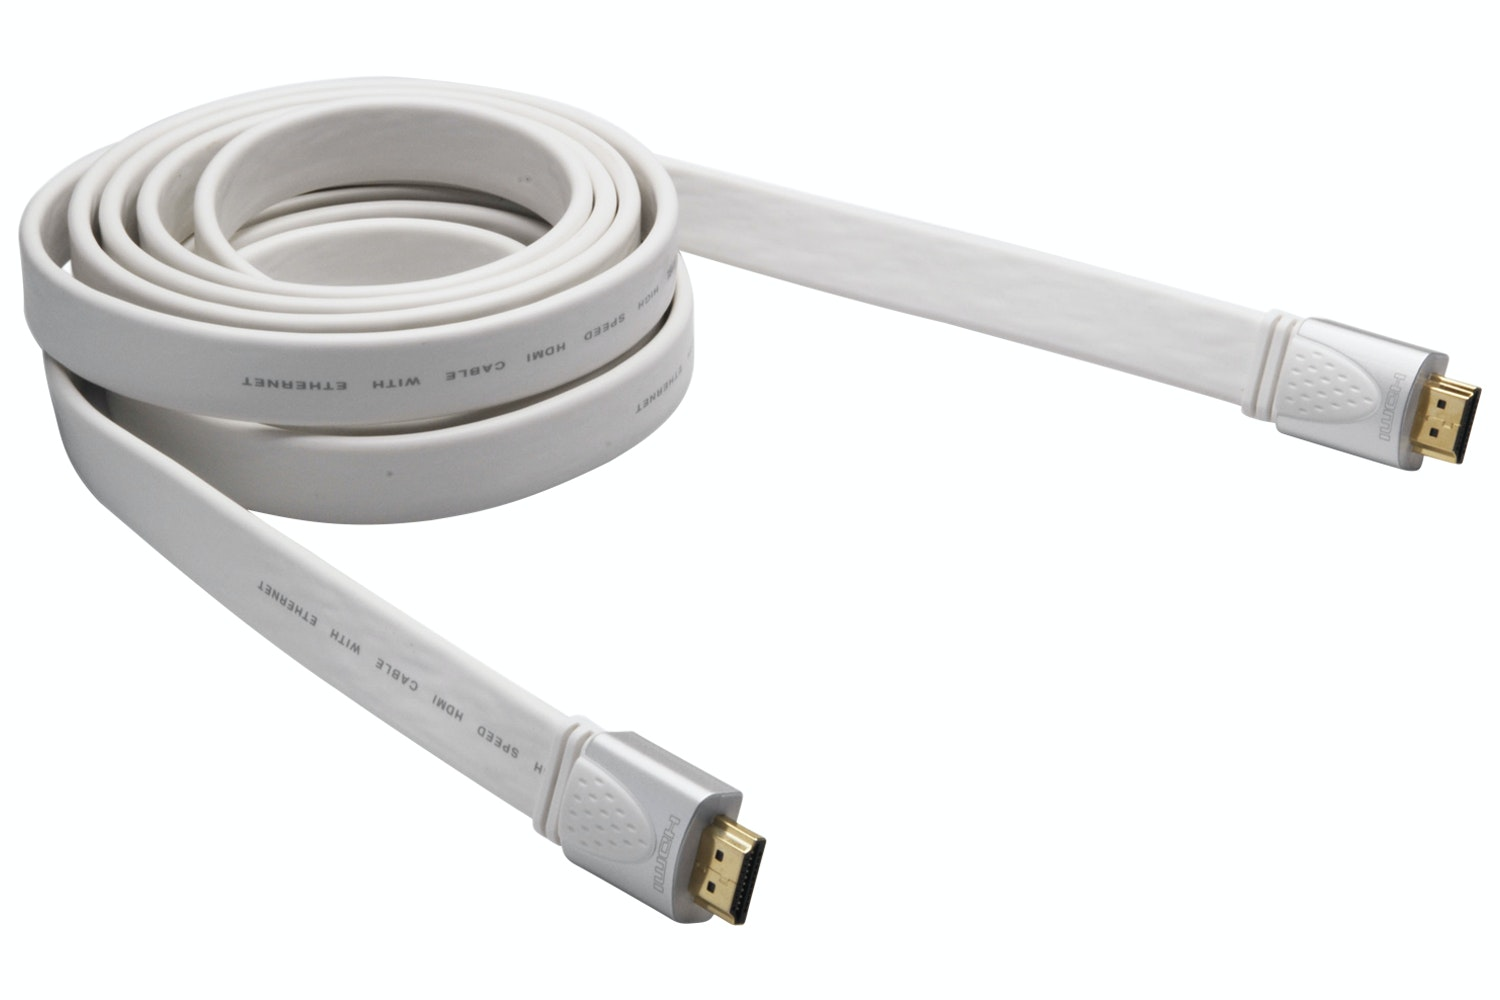 G&BL 6711 HDMI 2.0 Flat Audio/Video Cable | 1m